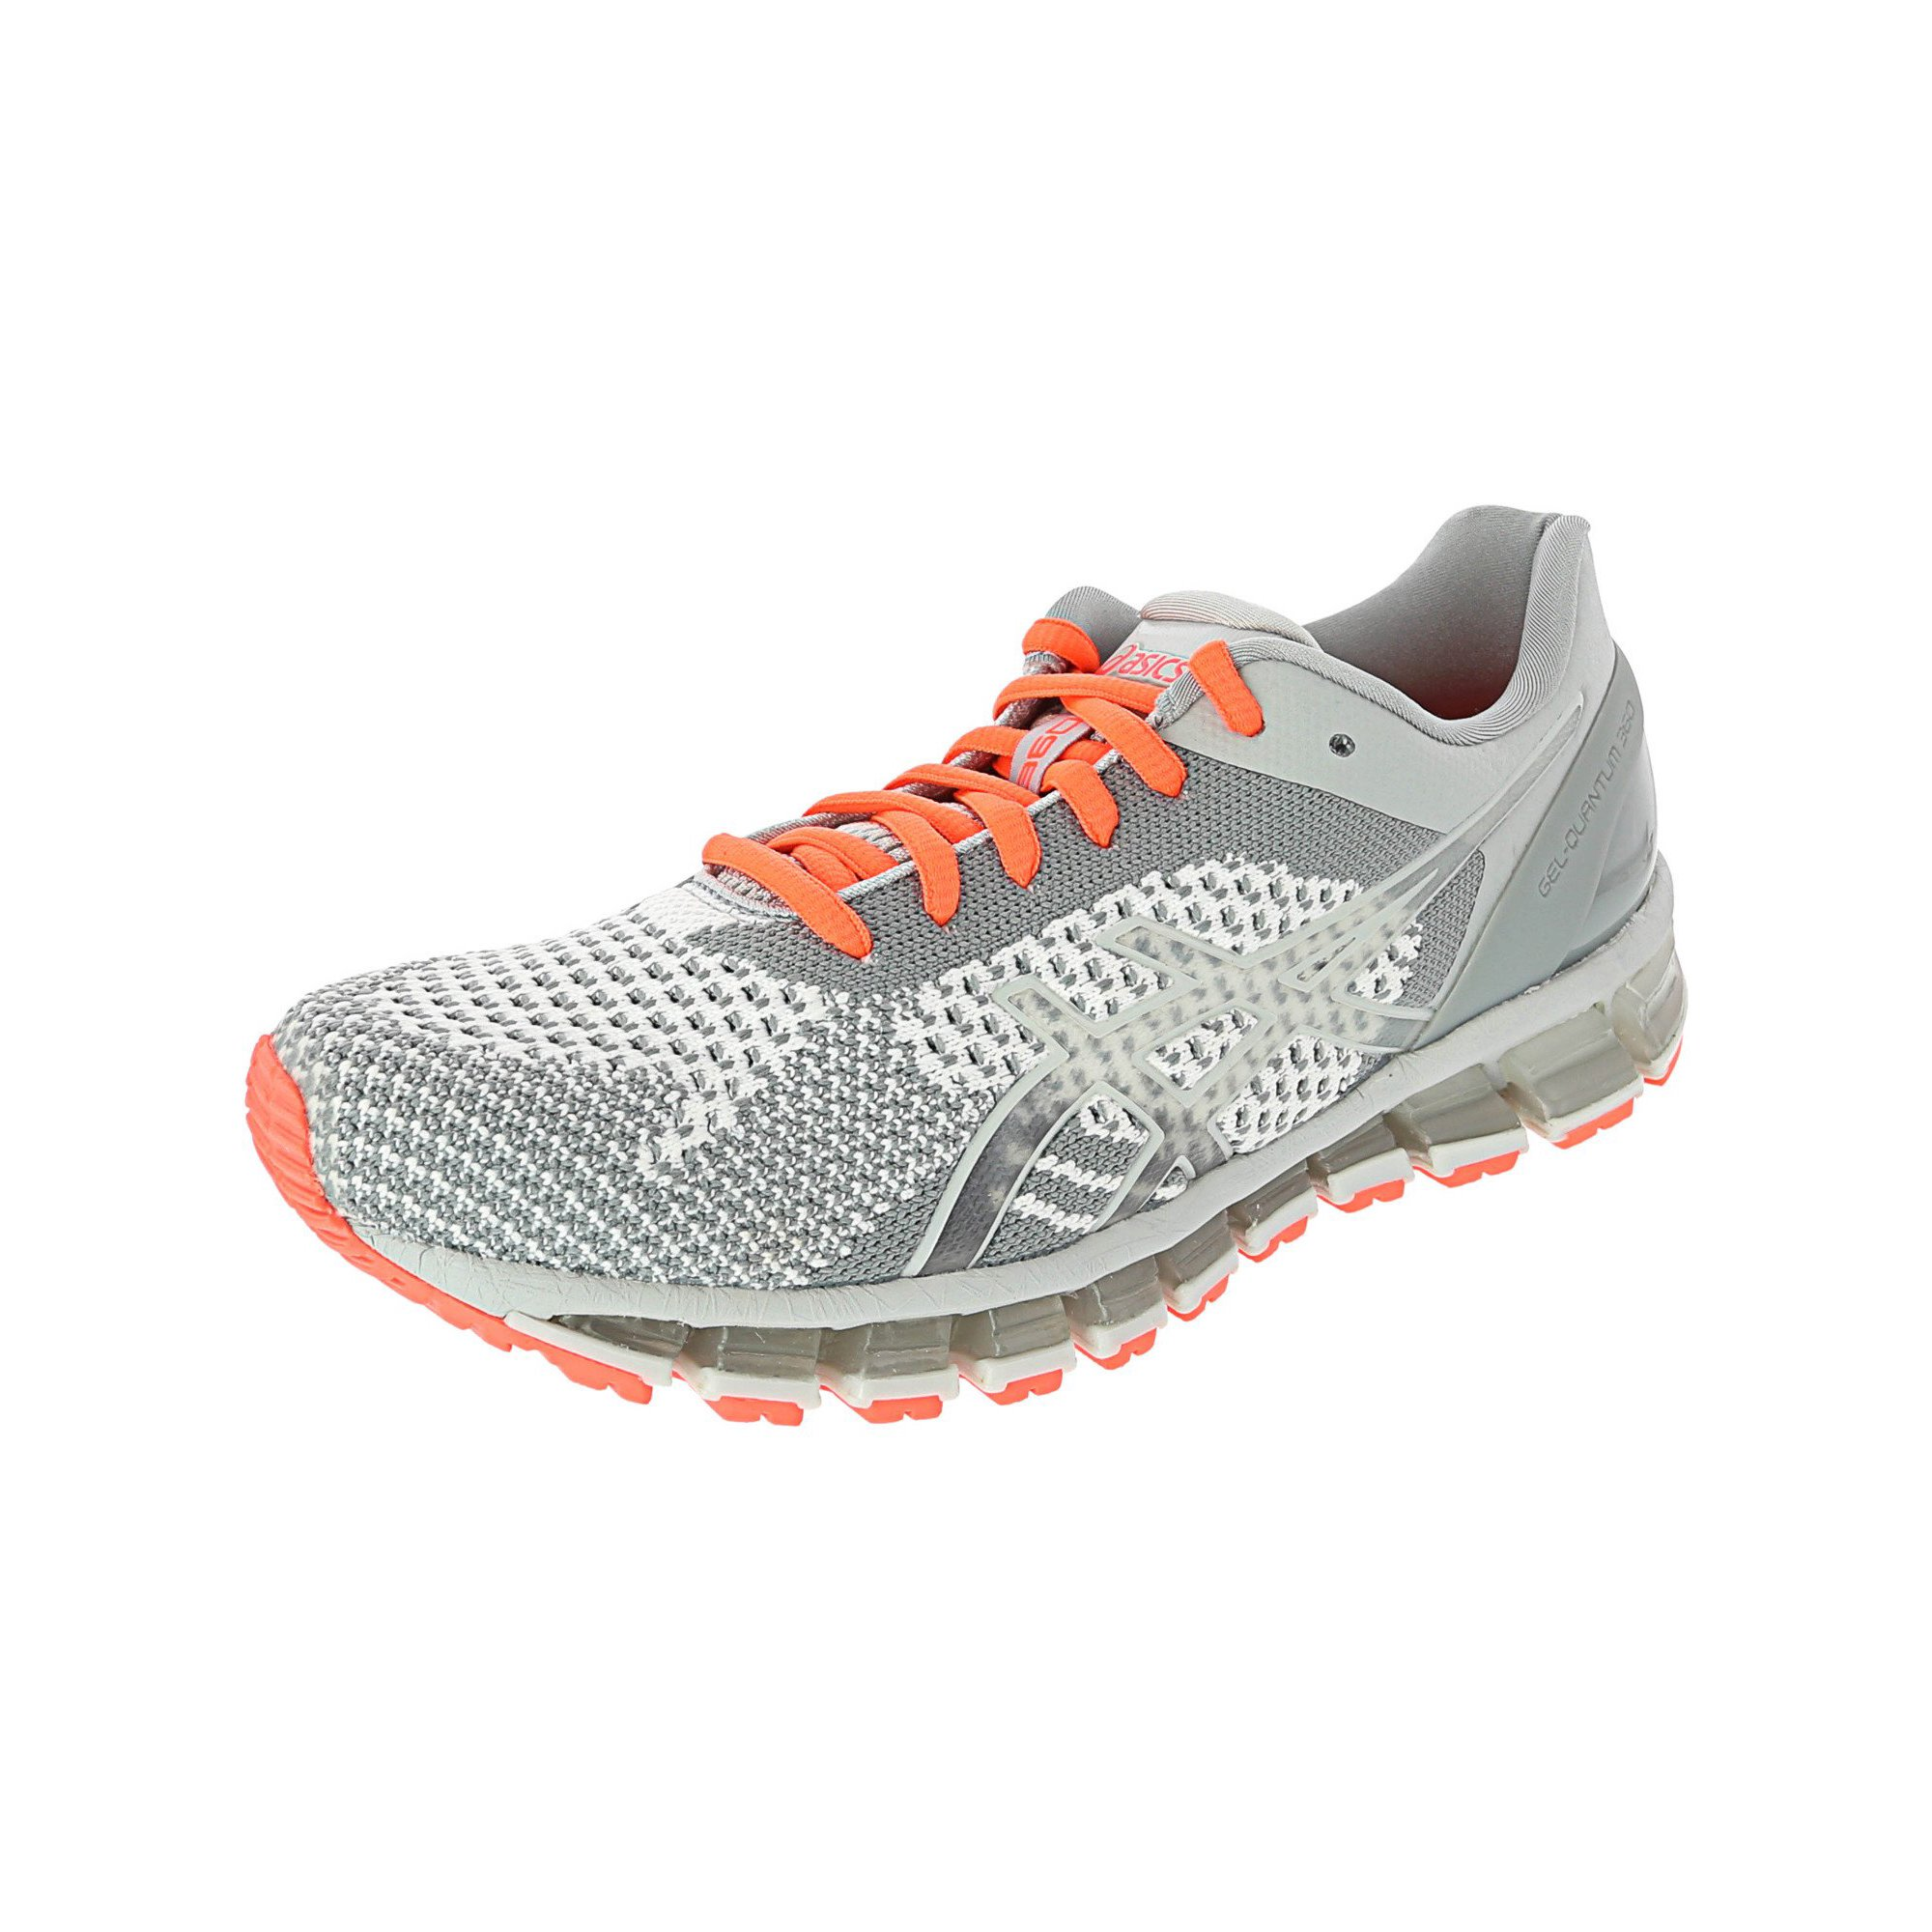 wholesale dealer 21d1d 69895 Asics Women's Gel-Quantum 360 Knit Ankle-High Running Shoe - 8M - Mid Grey  / Glacier Grey / Flash Coral